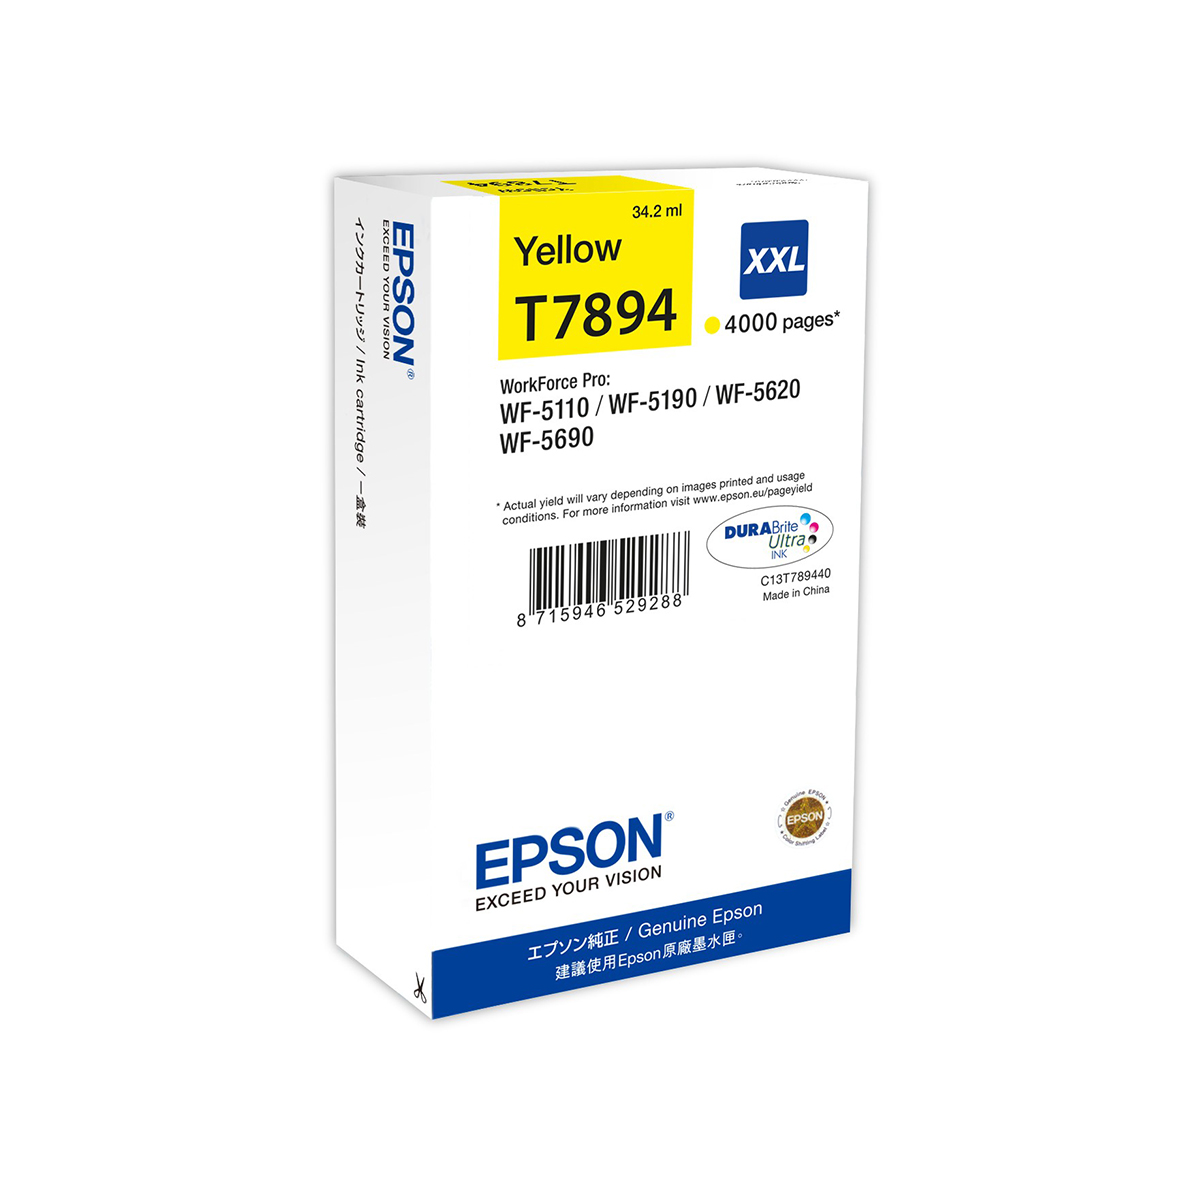 Epson T789 Ink Cartridge XXL Yellow